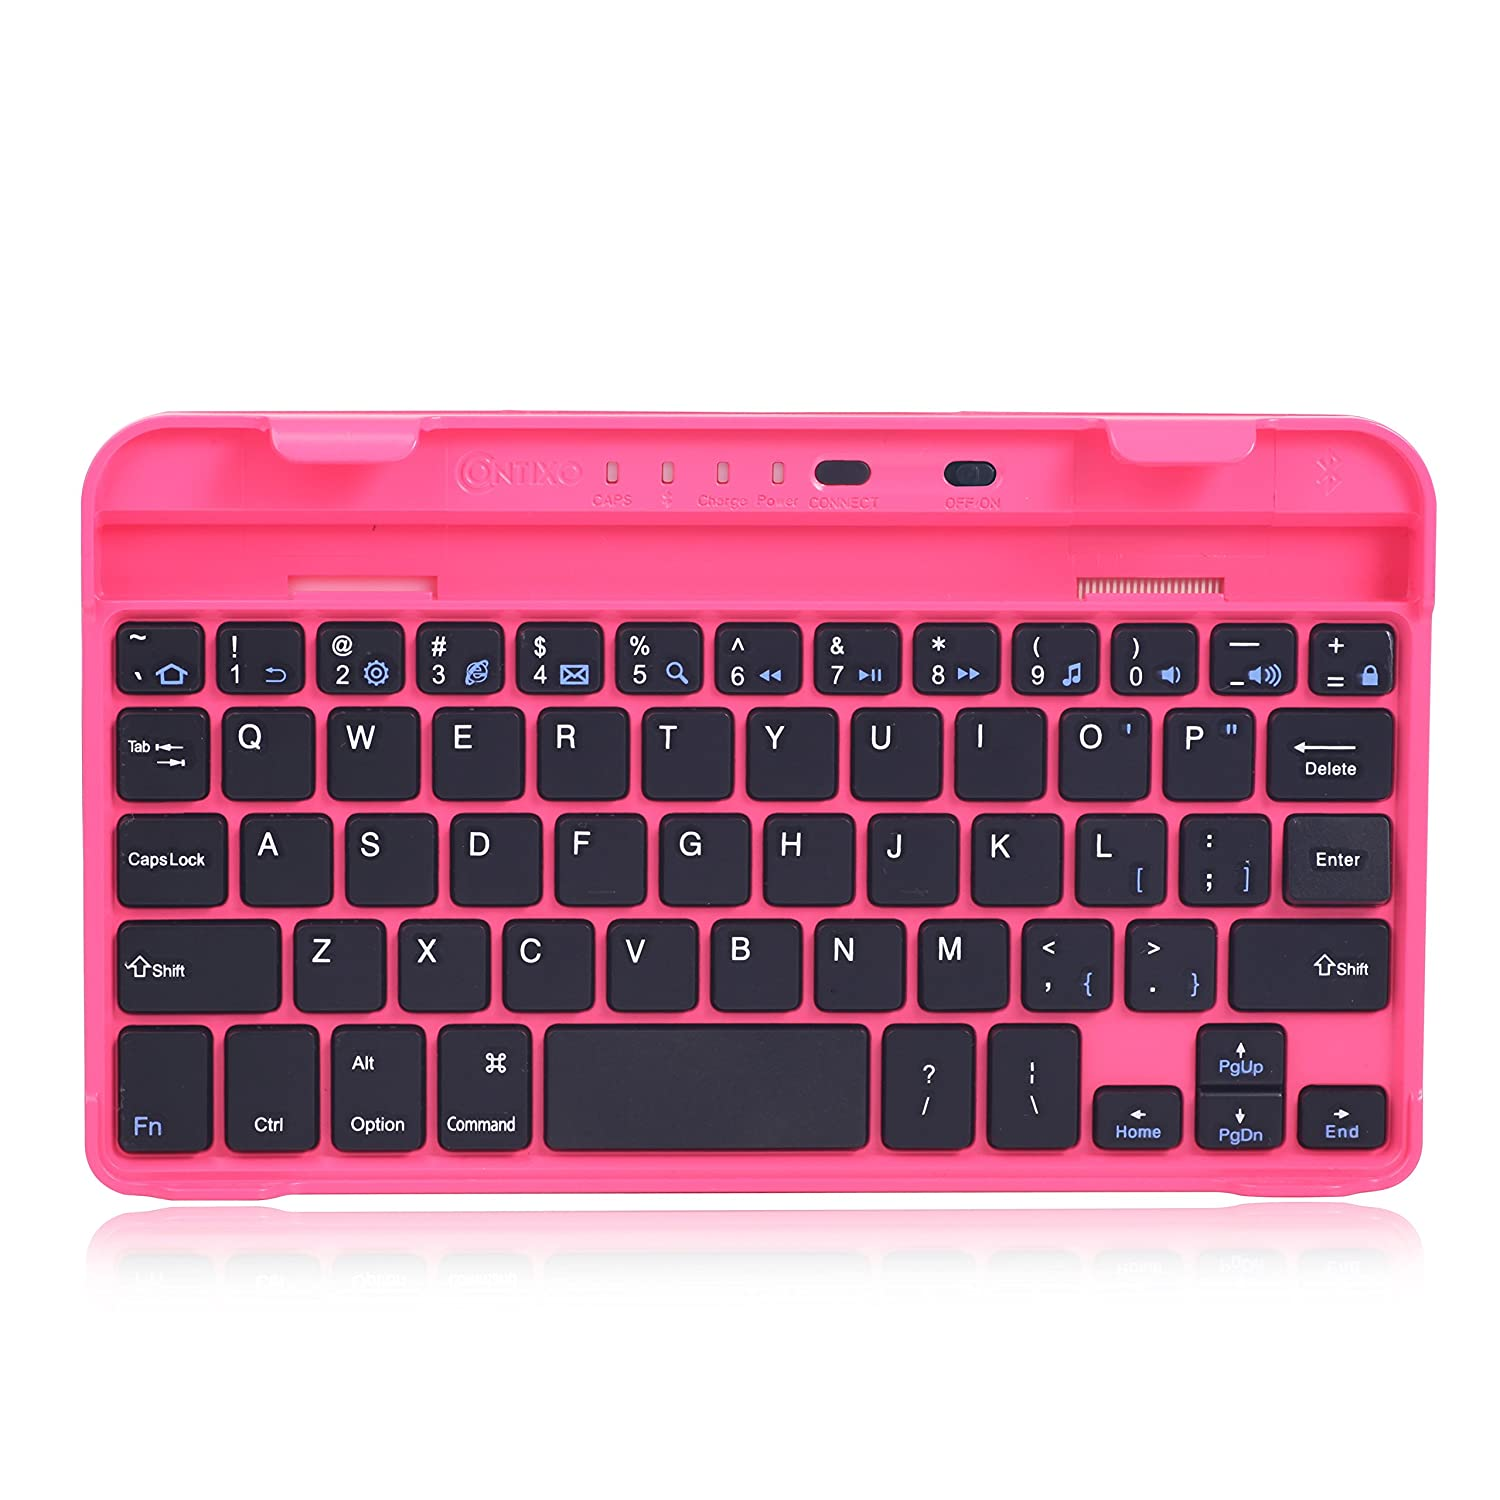 Contixo Bluetooth Keyboard with Dock Cradle for Contixo 7 Inch Tablet A78, Compatible with All Tablets, Smartphone and Other Bluetooth Mobile Devices (Black) KB-7